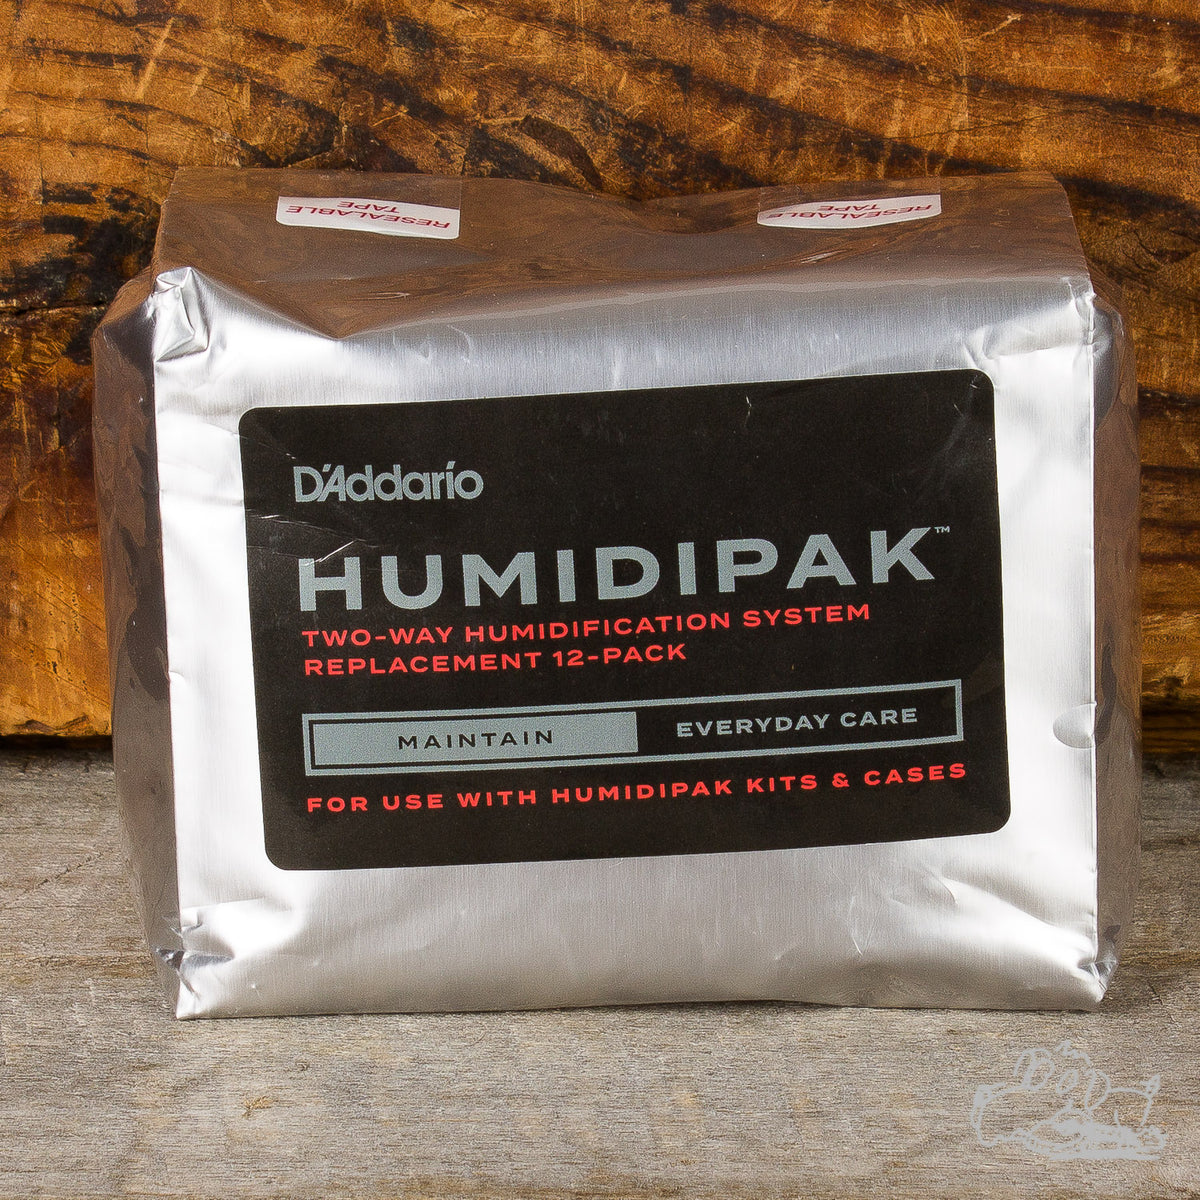 D'Addario Humidipak Two-Way Humidification System Replacement 12-Pack